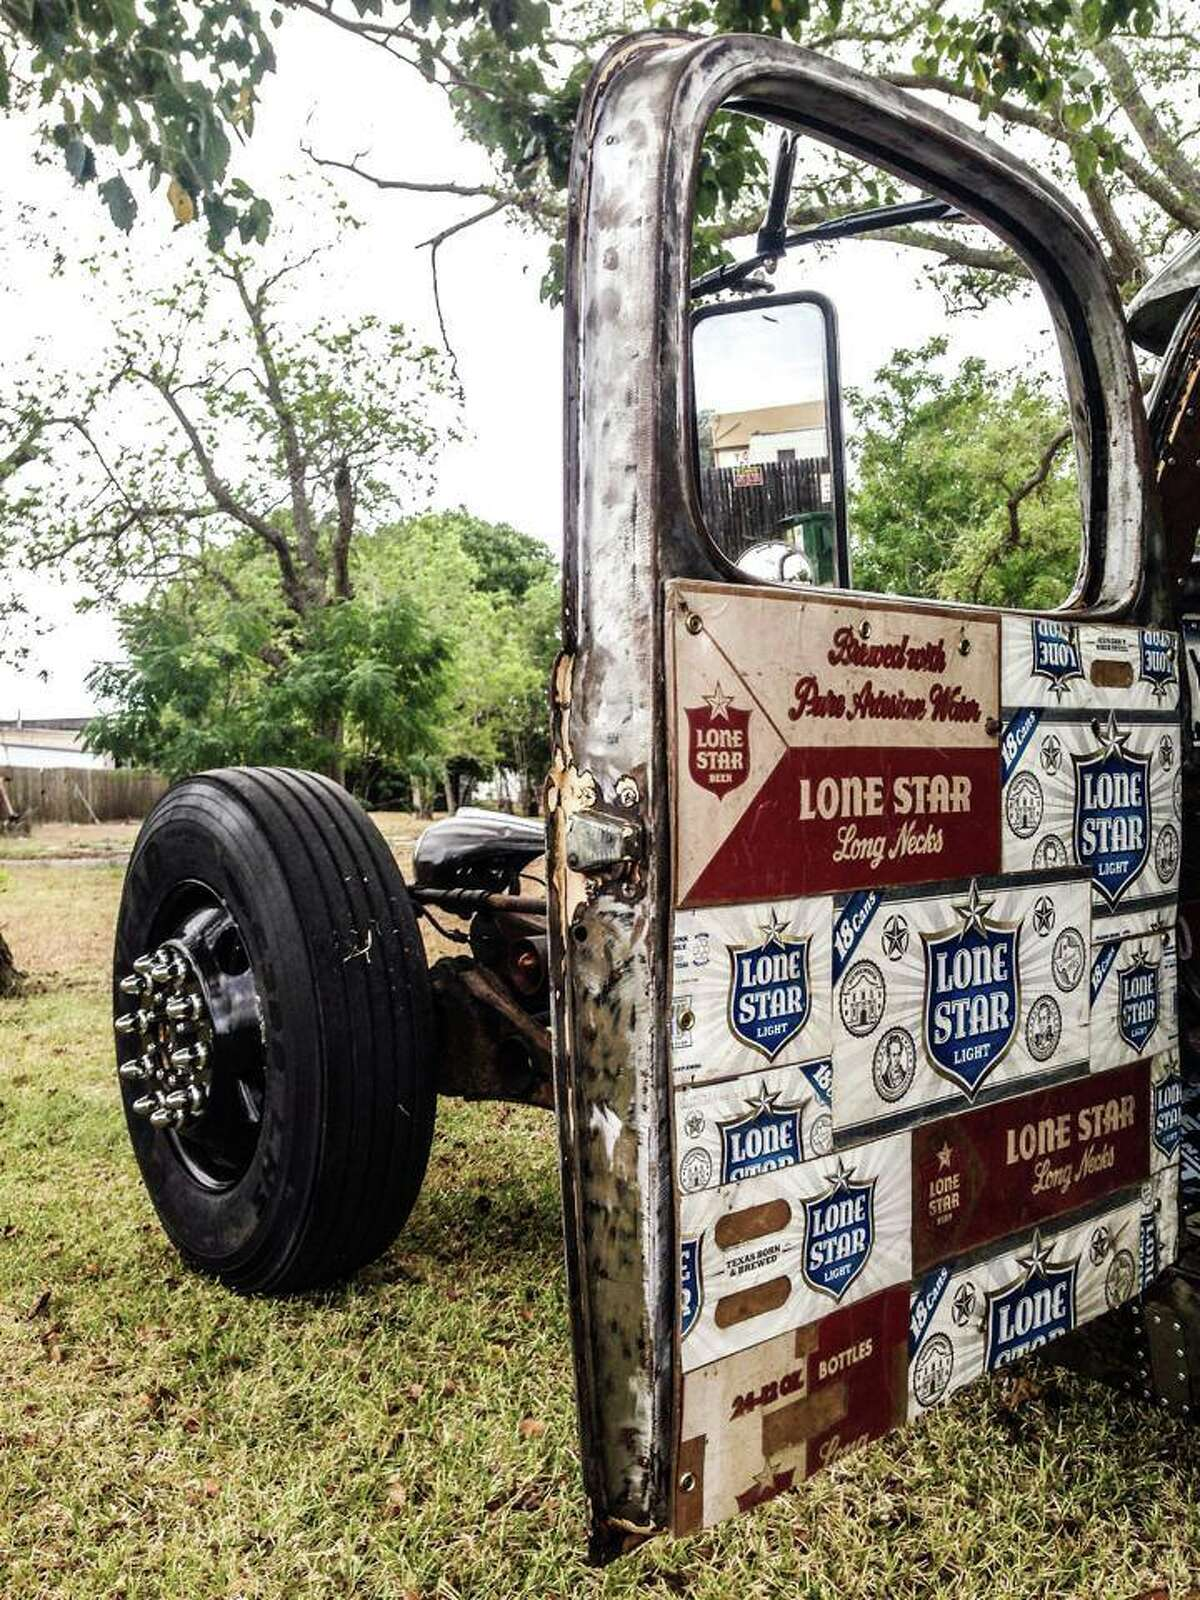 Unlike other hot rods, rat rods emphasize driveability and functionality over flash: rat rods often appear unfinished, but have quality parts.